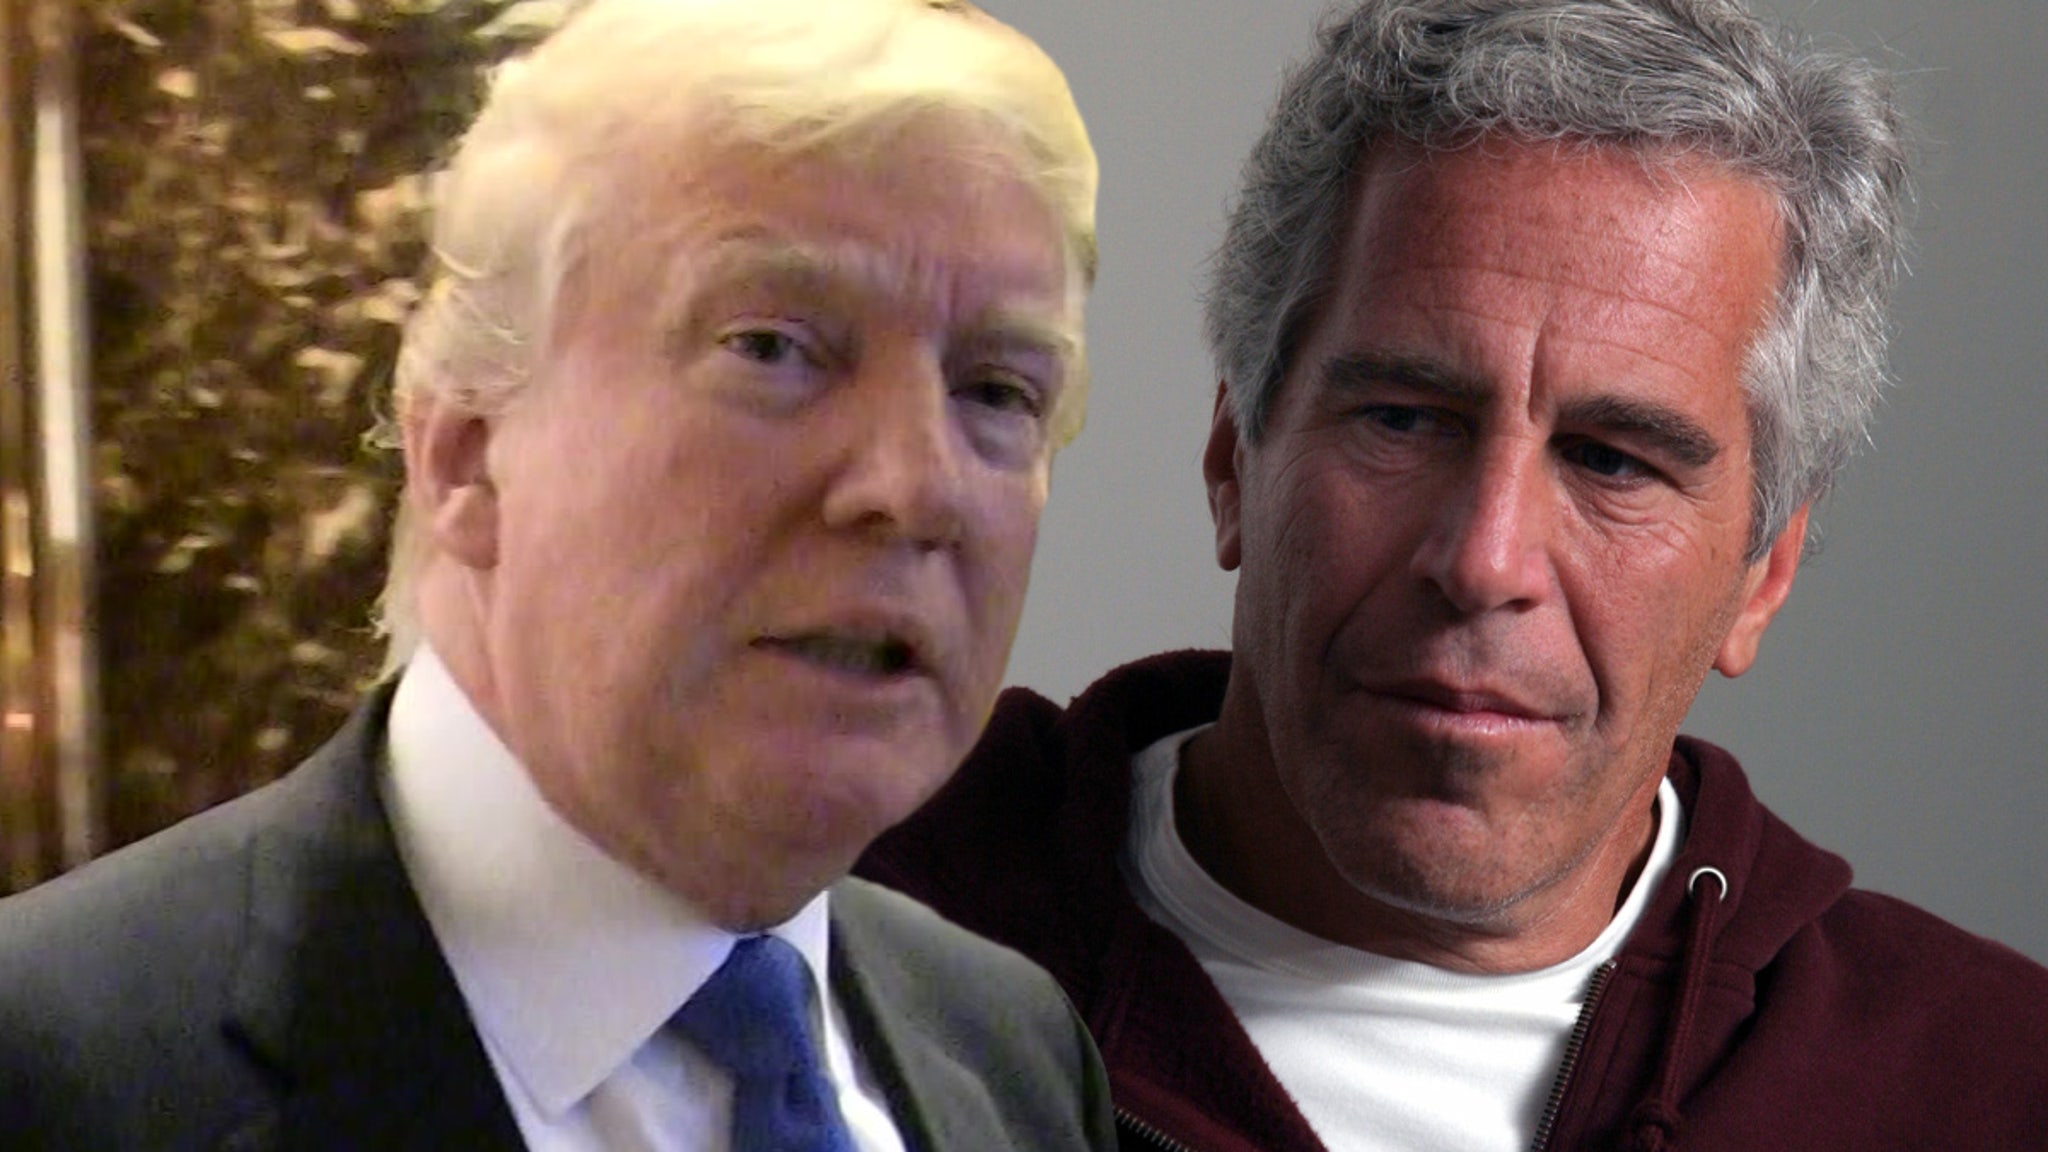 President Trump Suggests Jeffrey Epstein Might've Been Killed in Jail